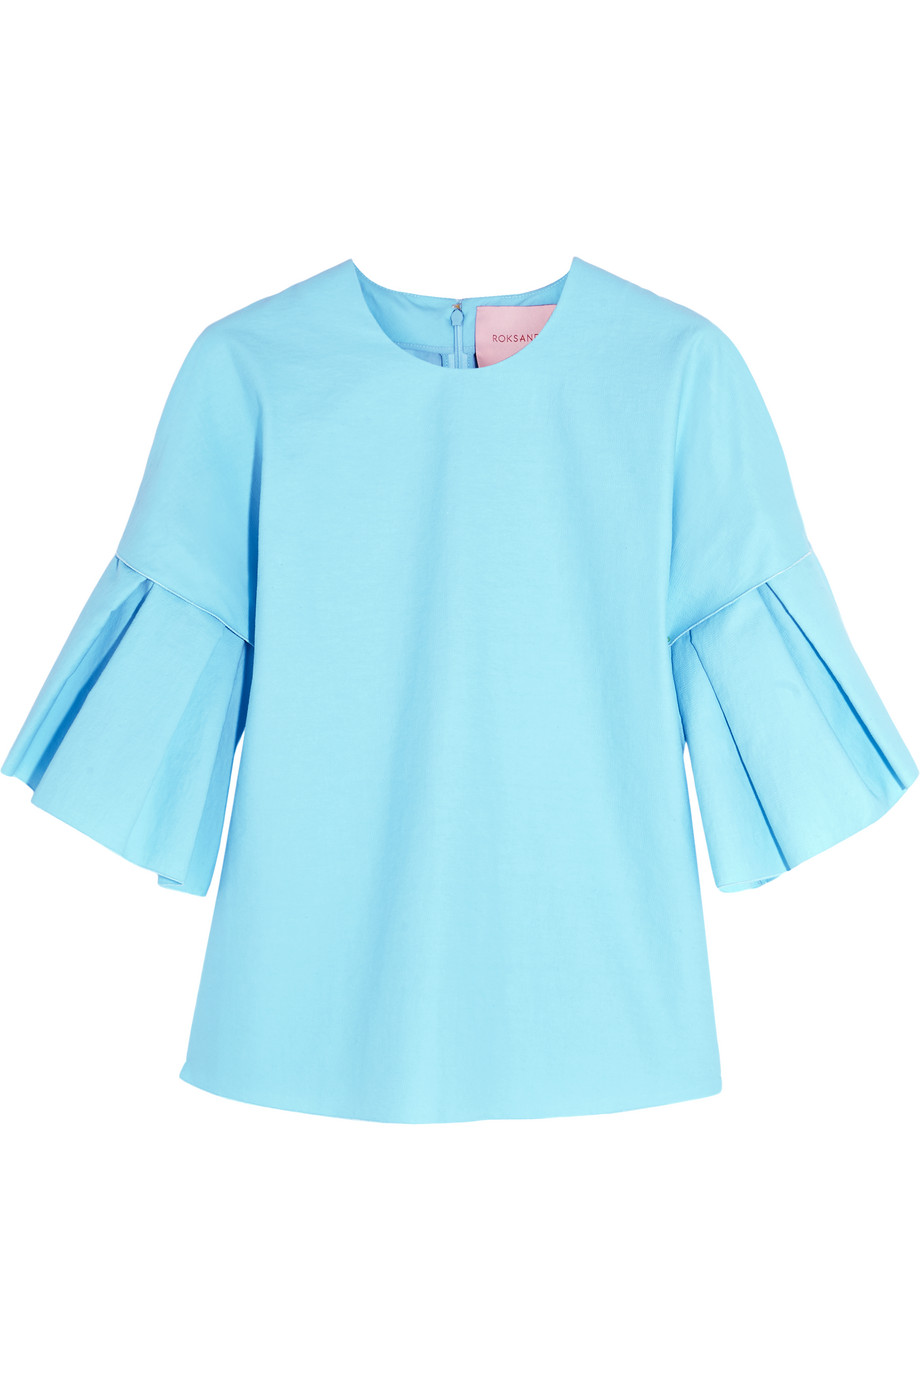 Roksanda Phoebe Crinkled Cotton-Blend Top, Sky Blue, Women's, Size: 10